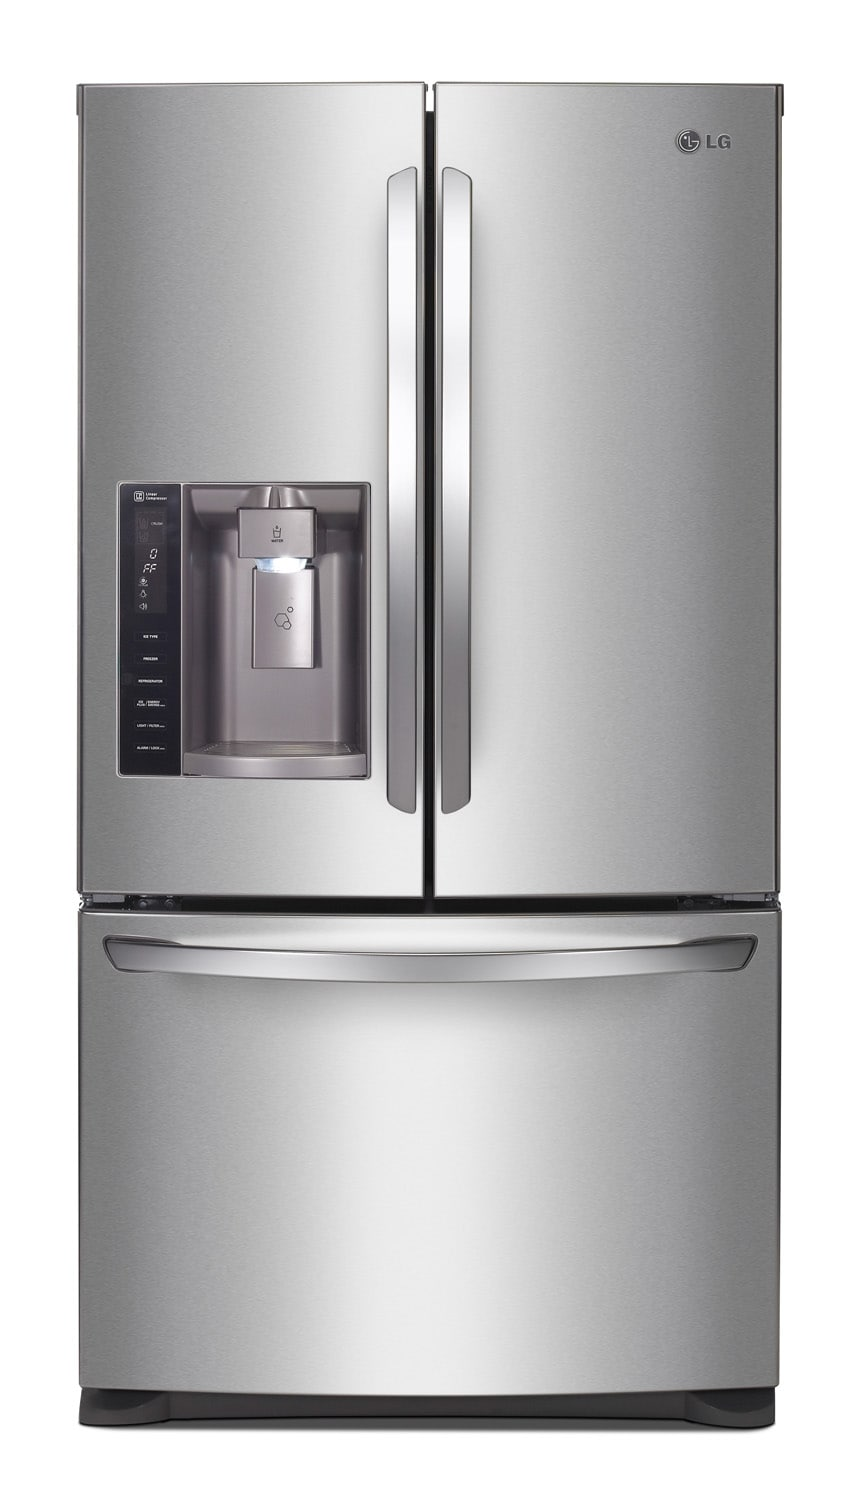 Refrigerators and Freezers - LG Stainless Steel French Door Refrigerator (26.8 Cu. Ft.) - LFX28968ST